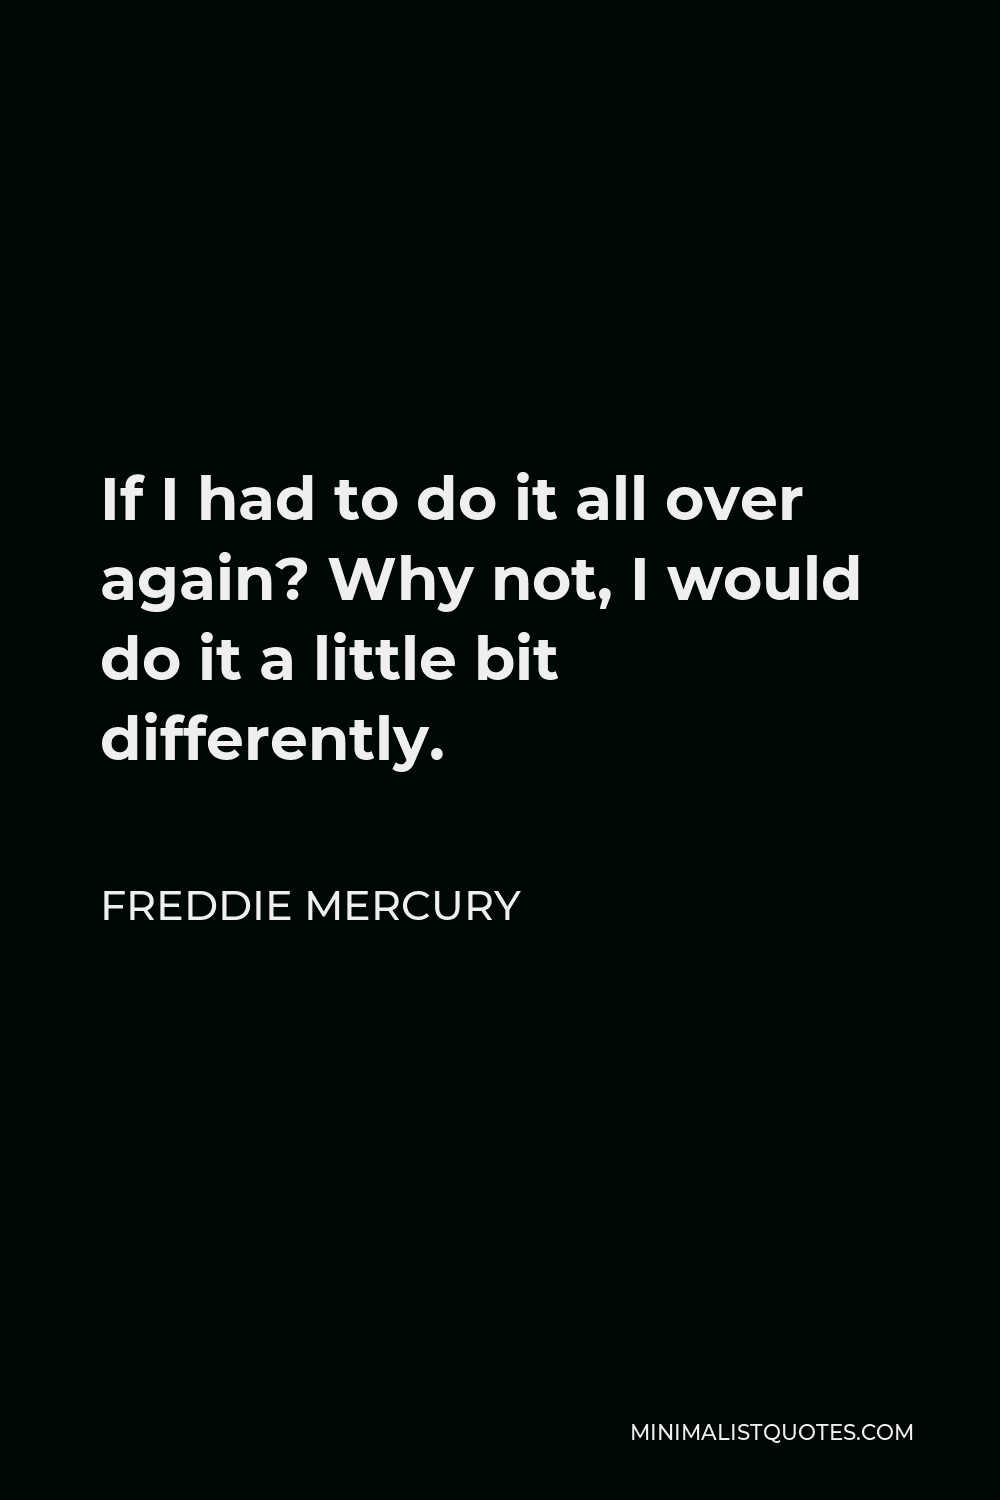 Freddie Mercury Quote - If I had to do it all over again? Why not, I would do it a little bit differently.